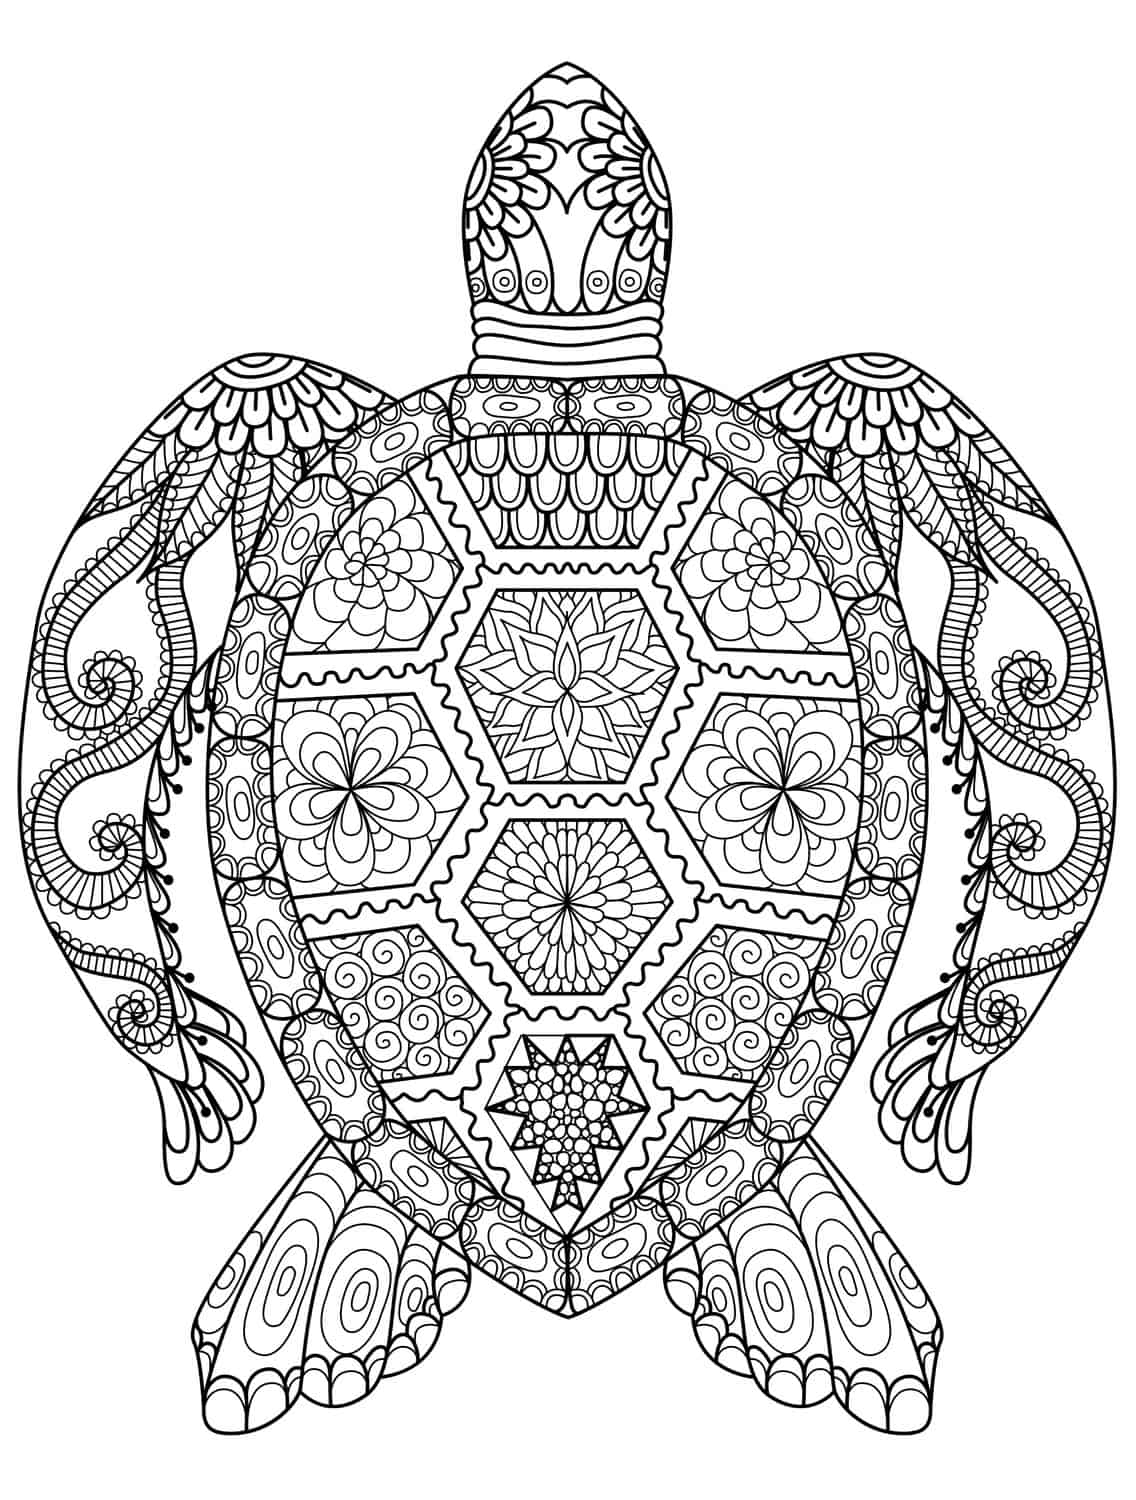 coloring pages for adults printable hard coloring pages for adults best coloring pages for kids adults printable for coloring pages